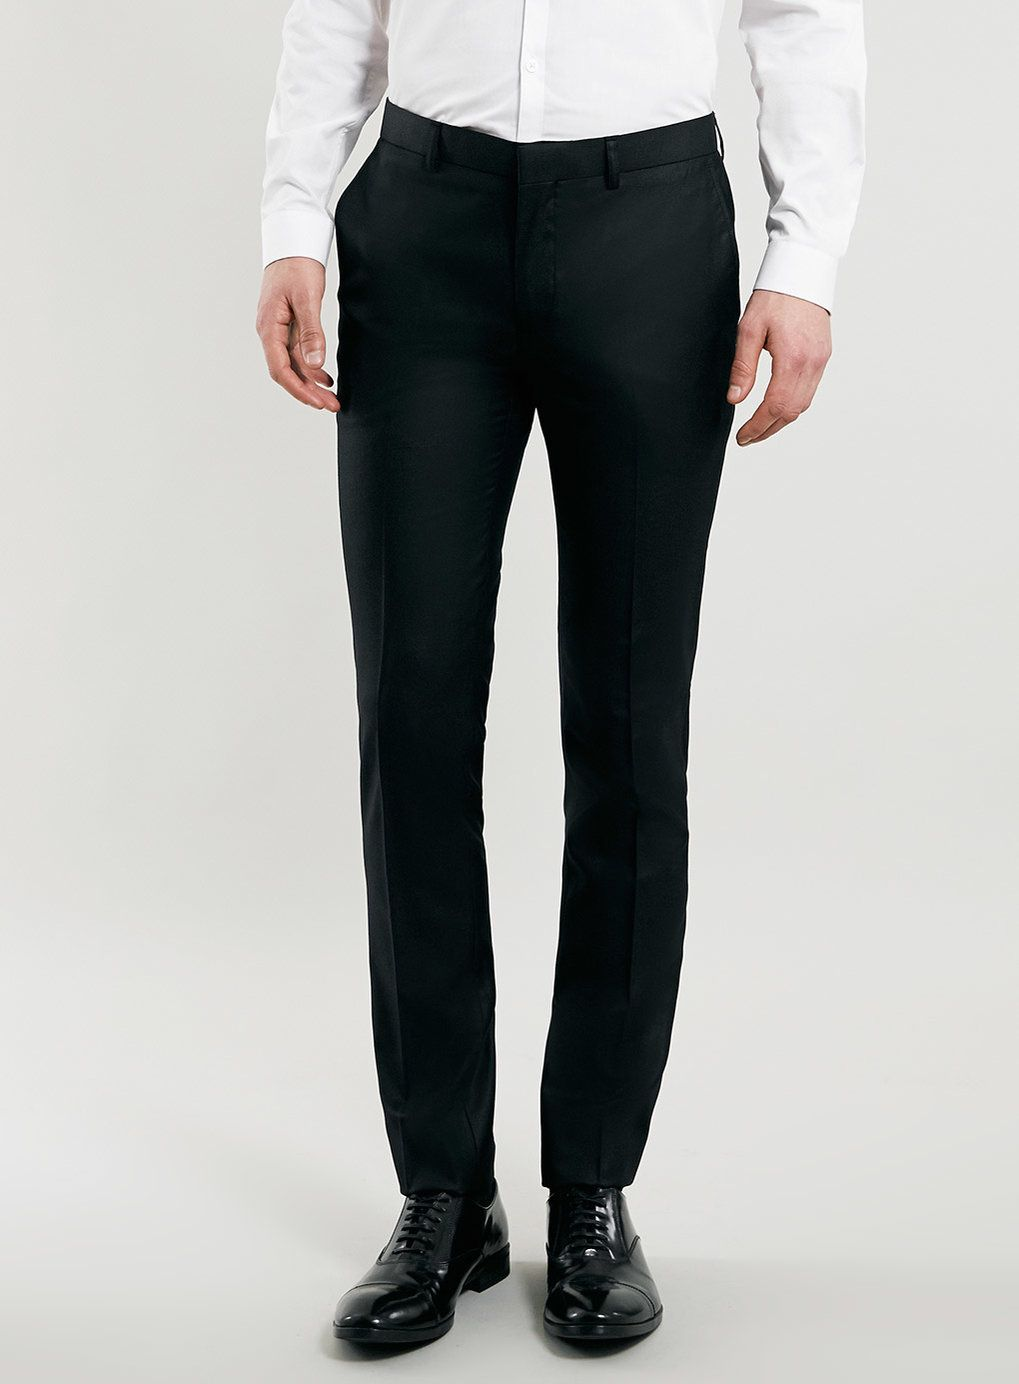 Black Ultra Skinny Suit Pants | Skinny suits